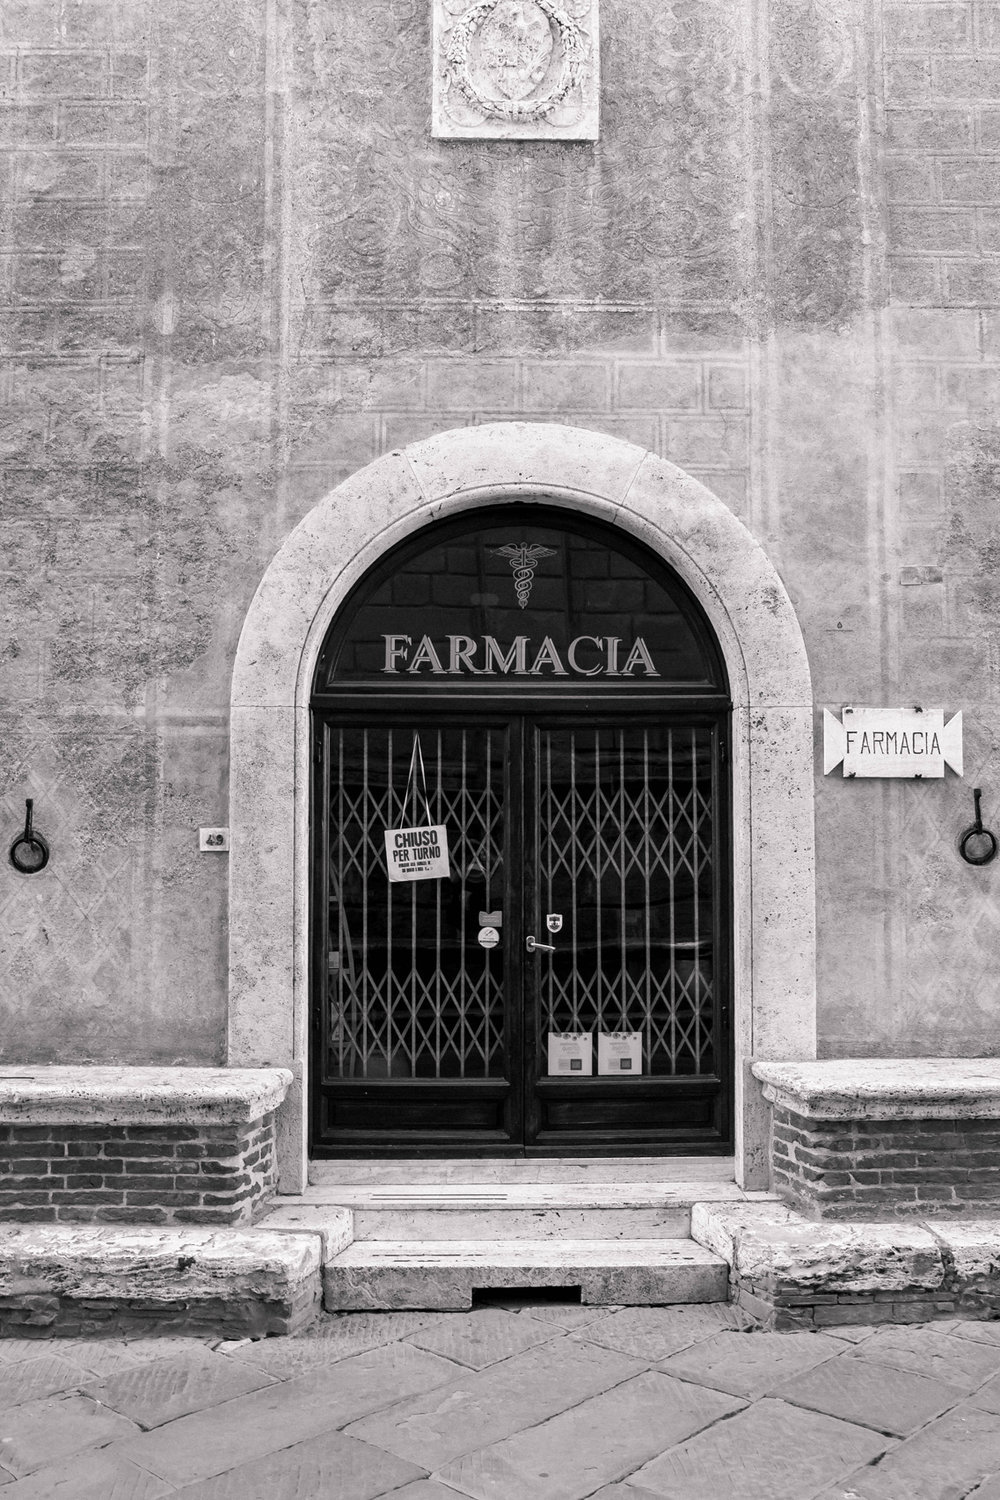 Pharmacy in Pienza, Tuscany